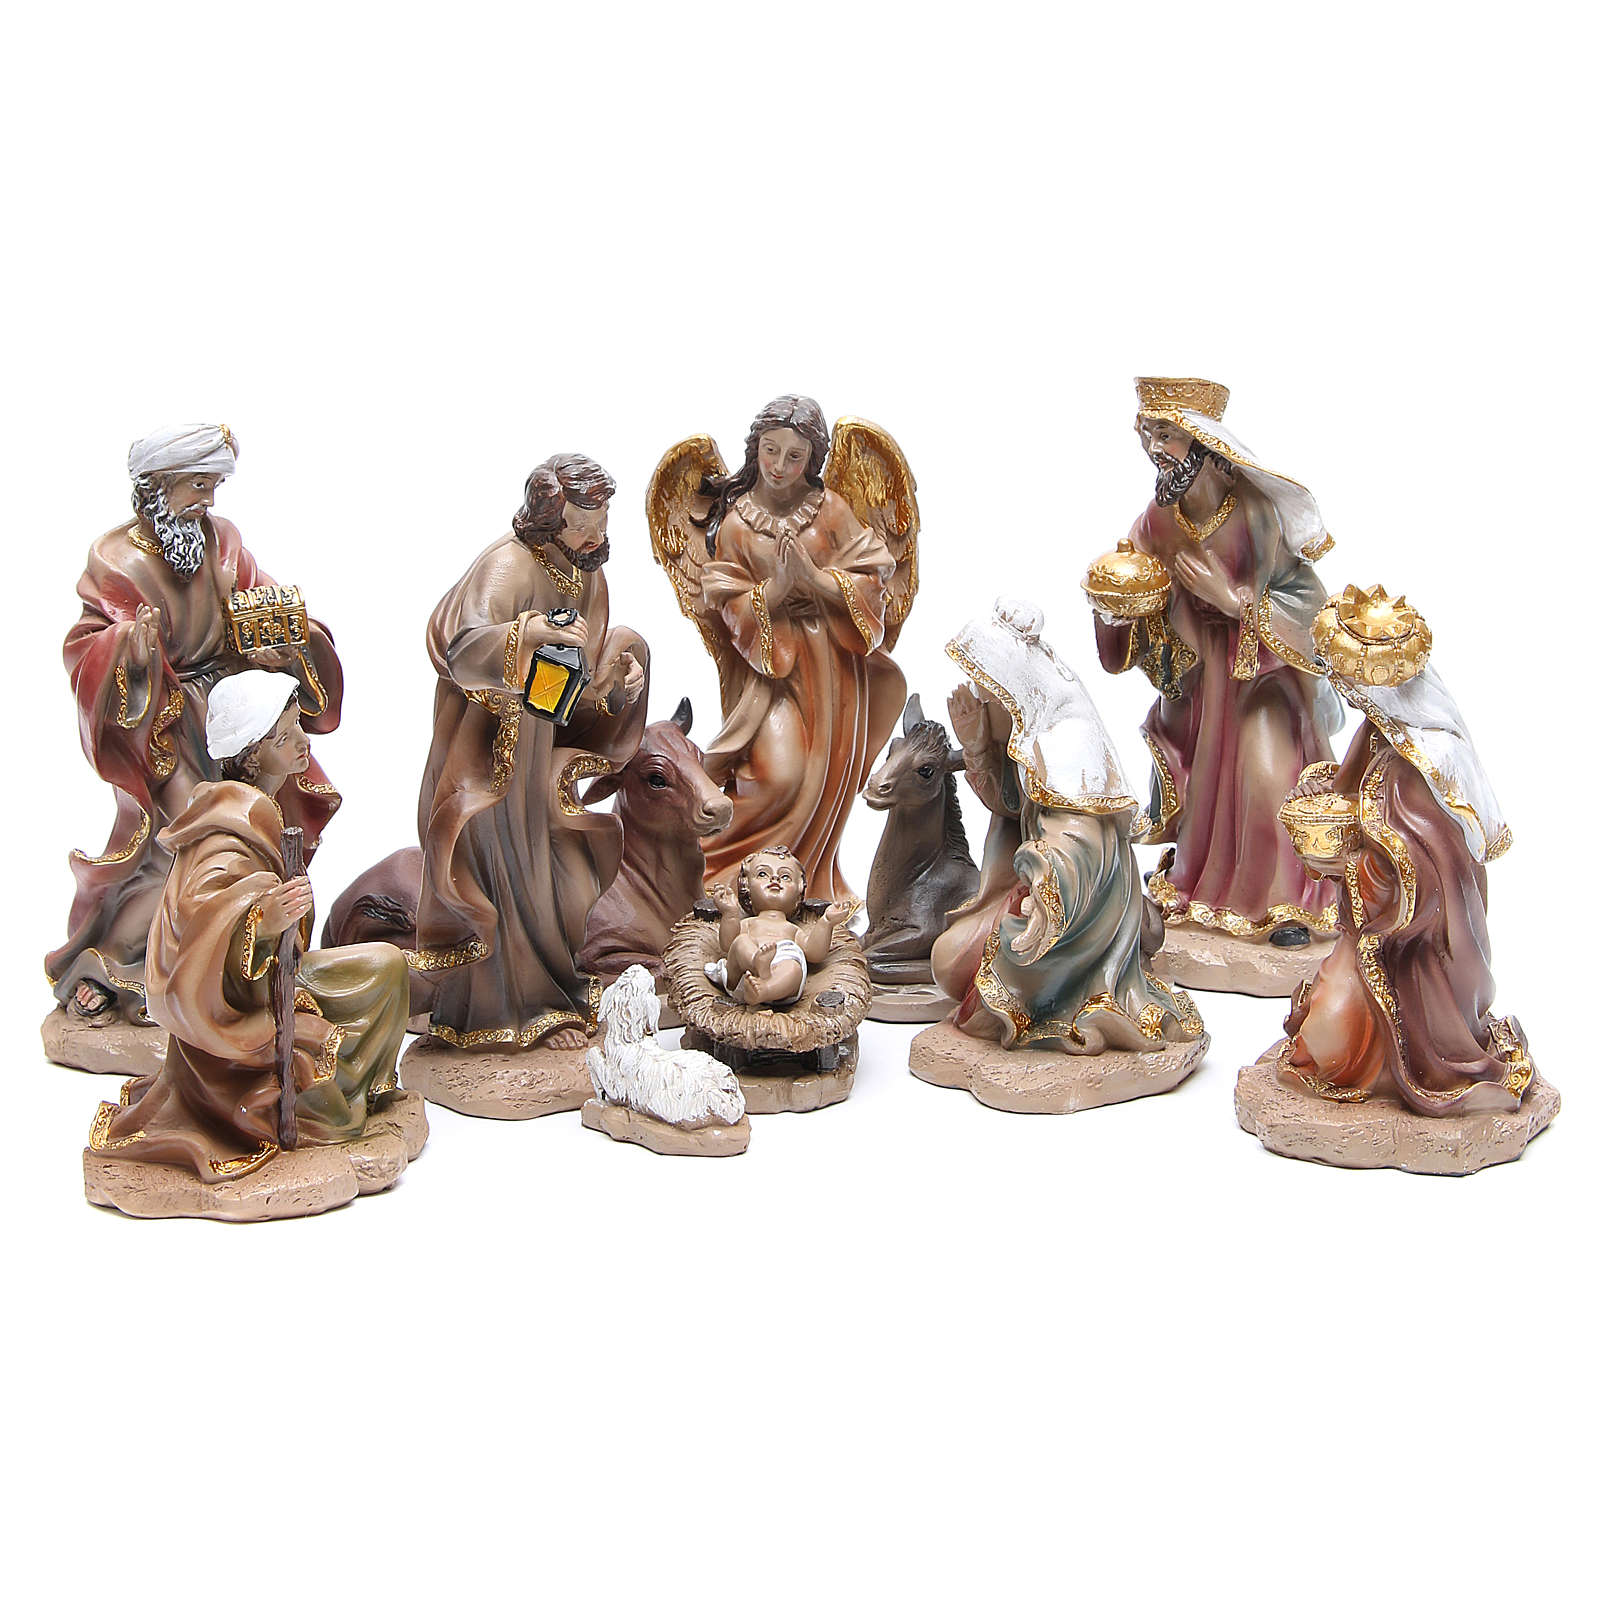 Resin nativity set measuring 20cm, 11 figurines in Wood-like effect 4